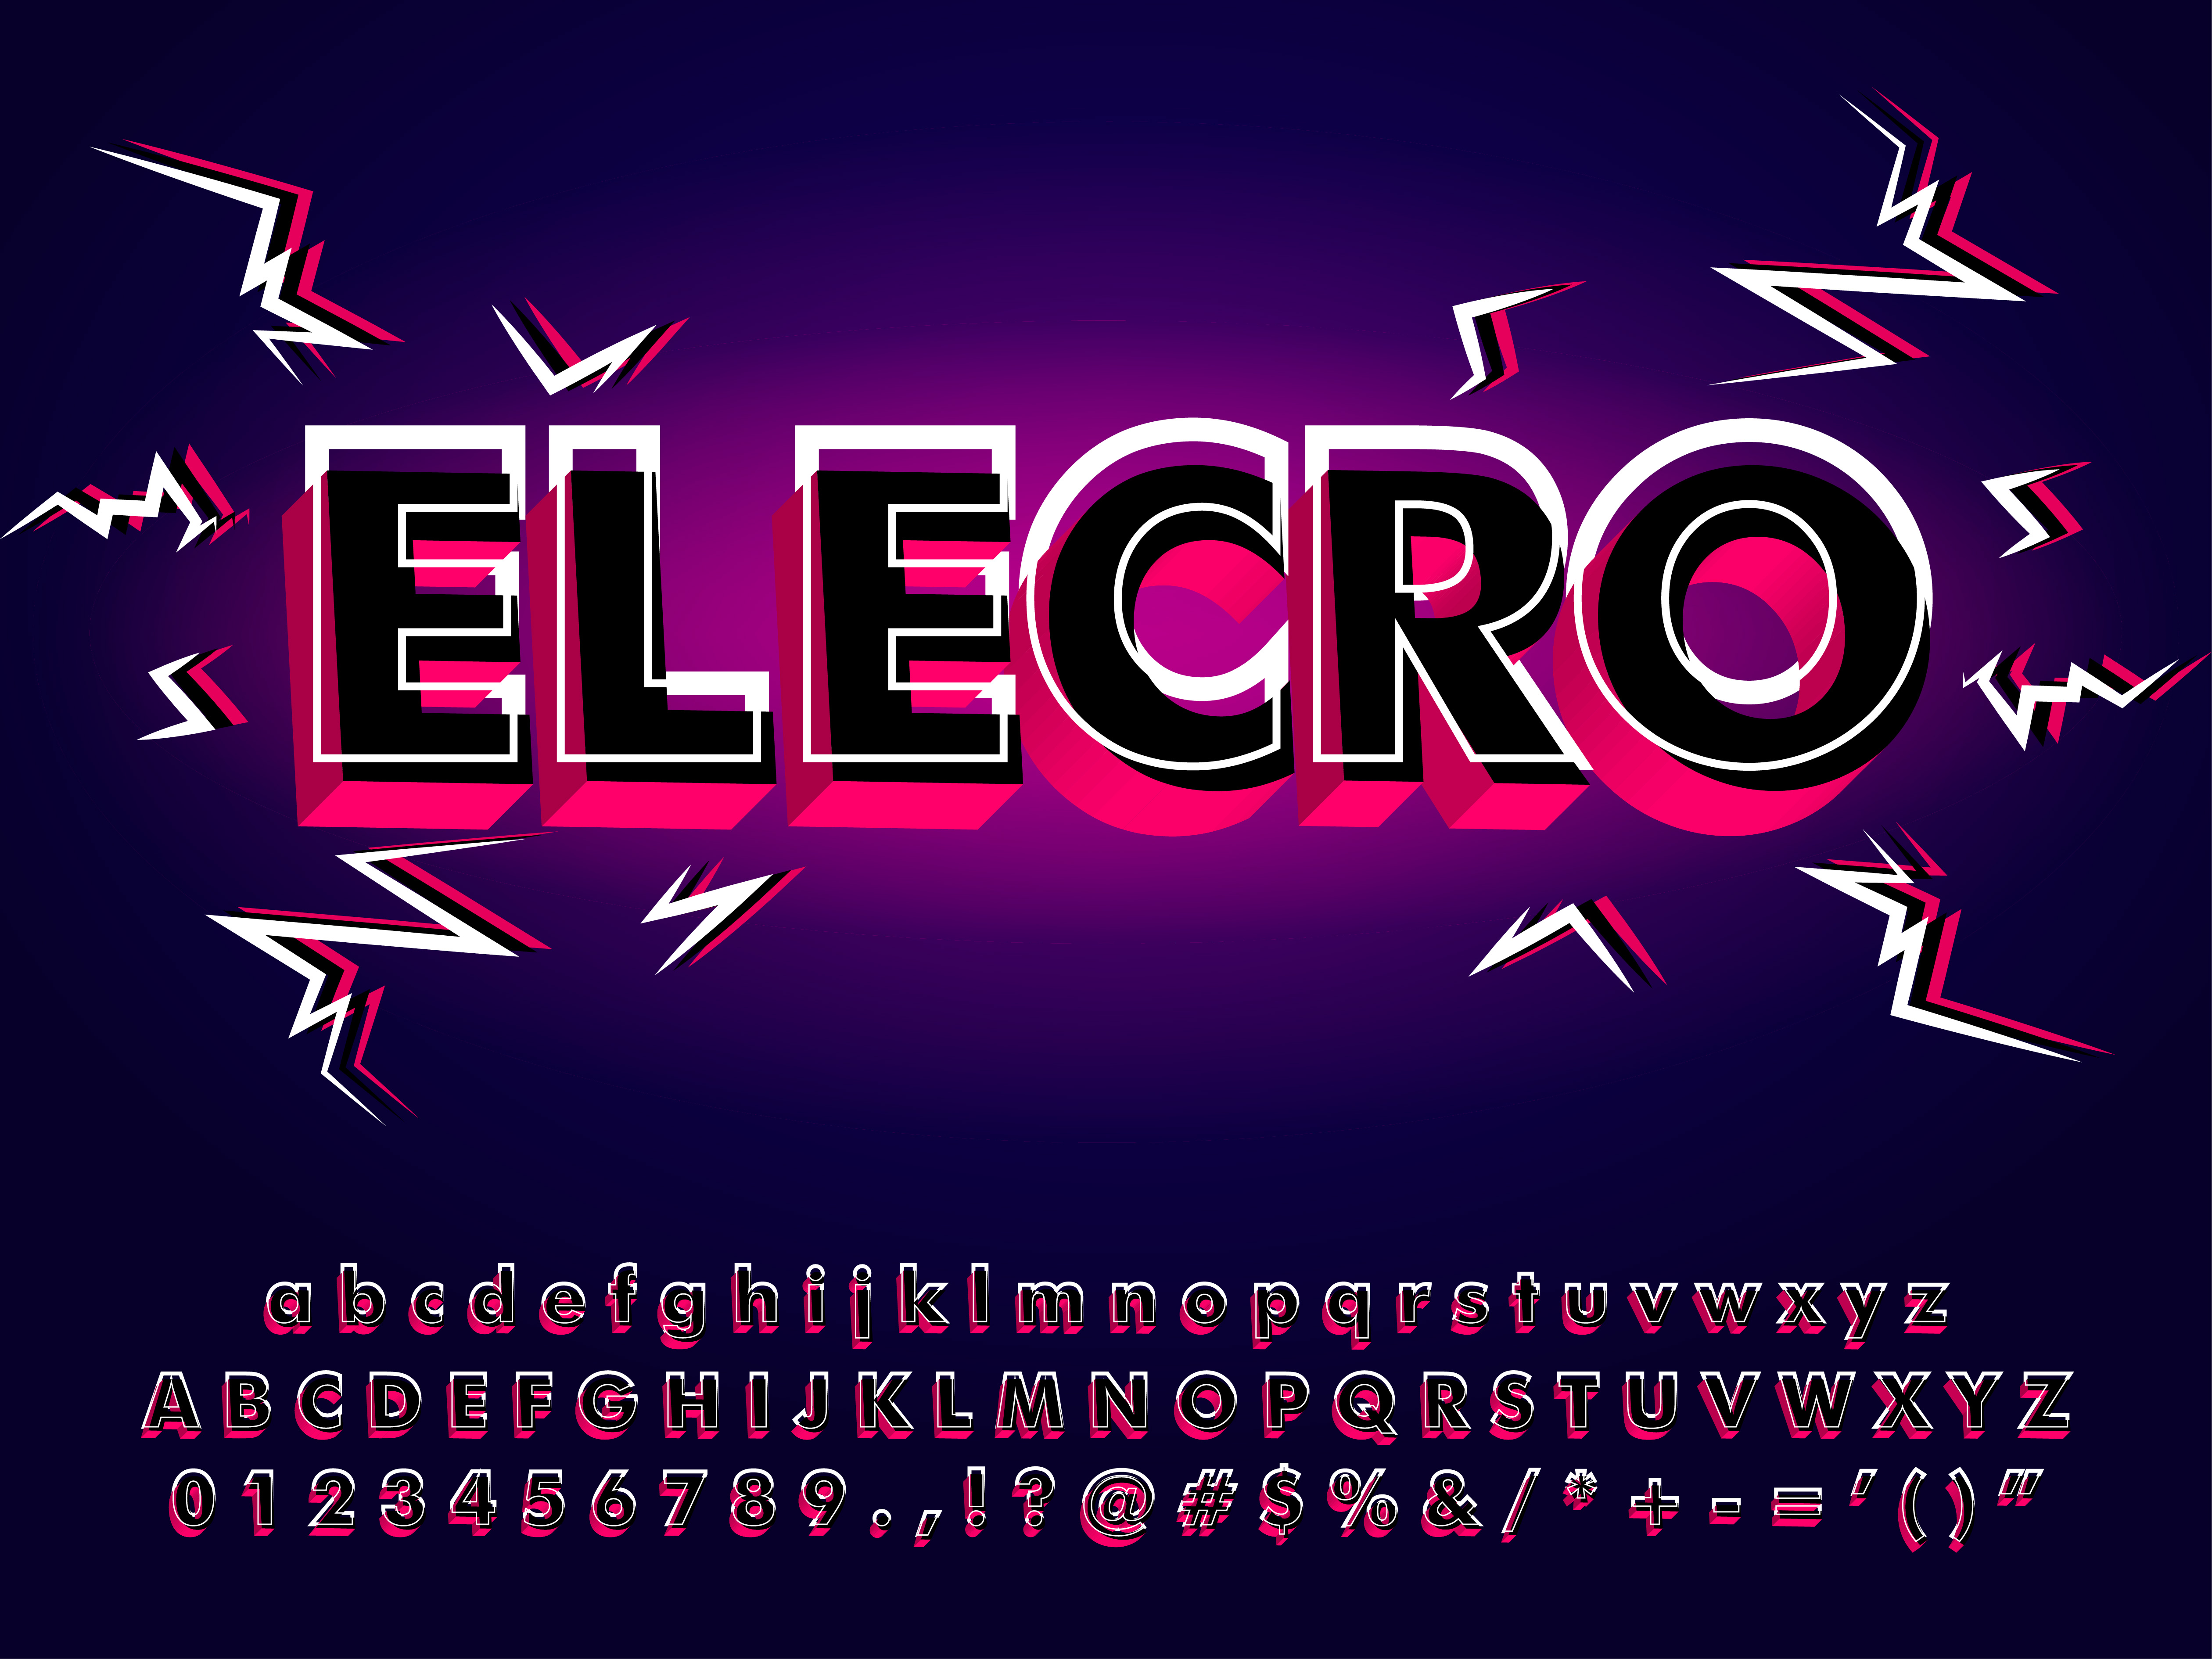 Electronic Typeface With 3d Glitch Effect - Download Free Vectors, Clipart Graphics & Vector Art